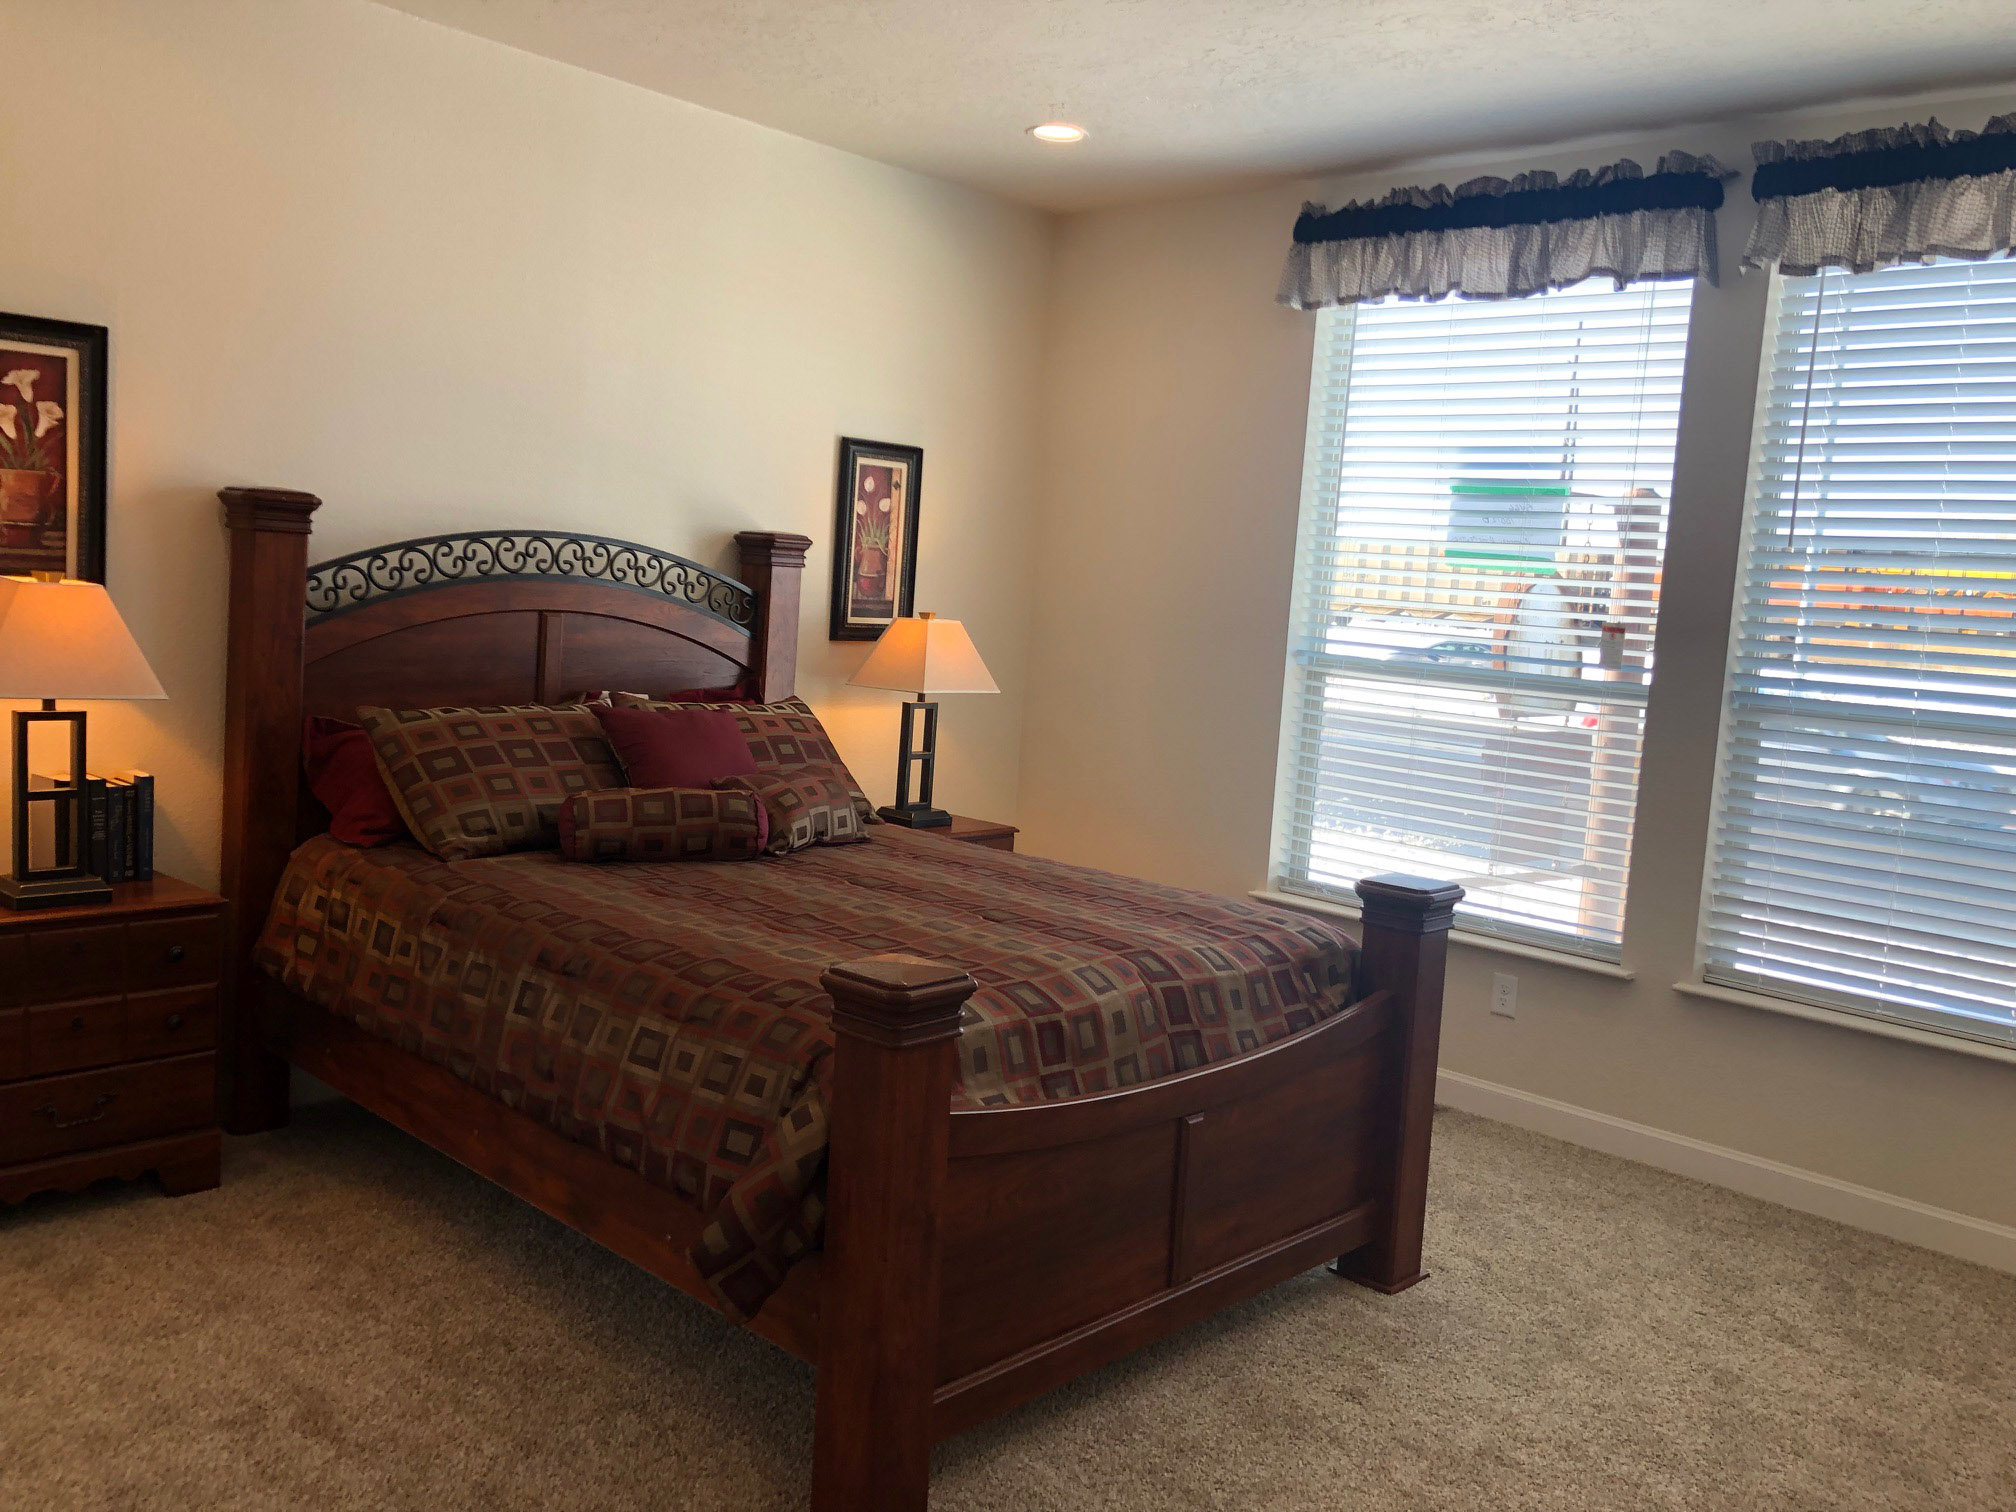 American Home Centers In Billings Mt Manufactured Home